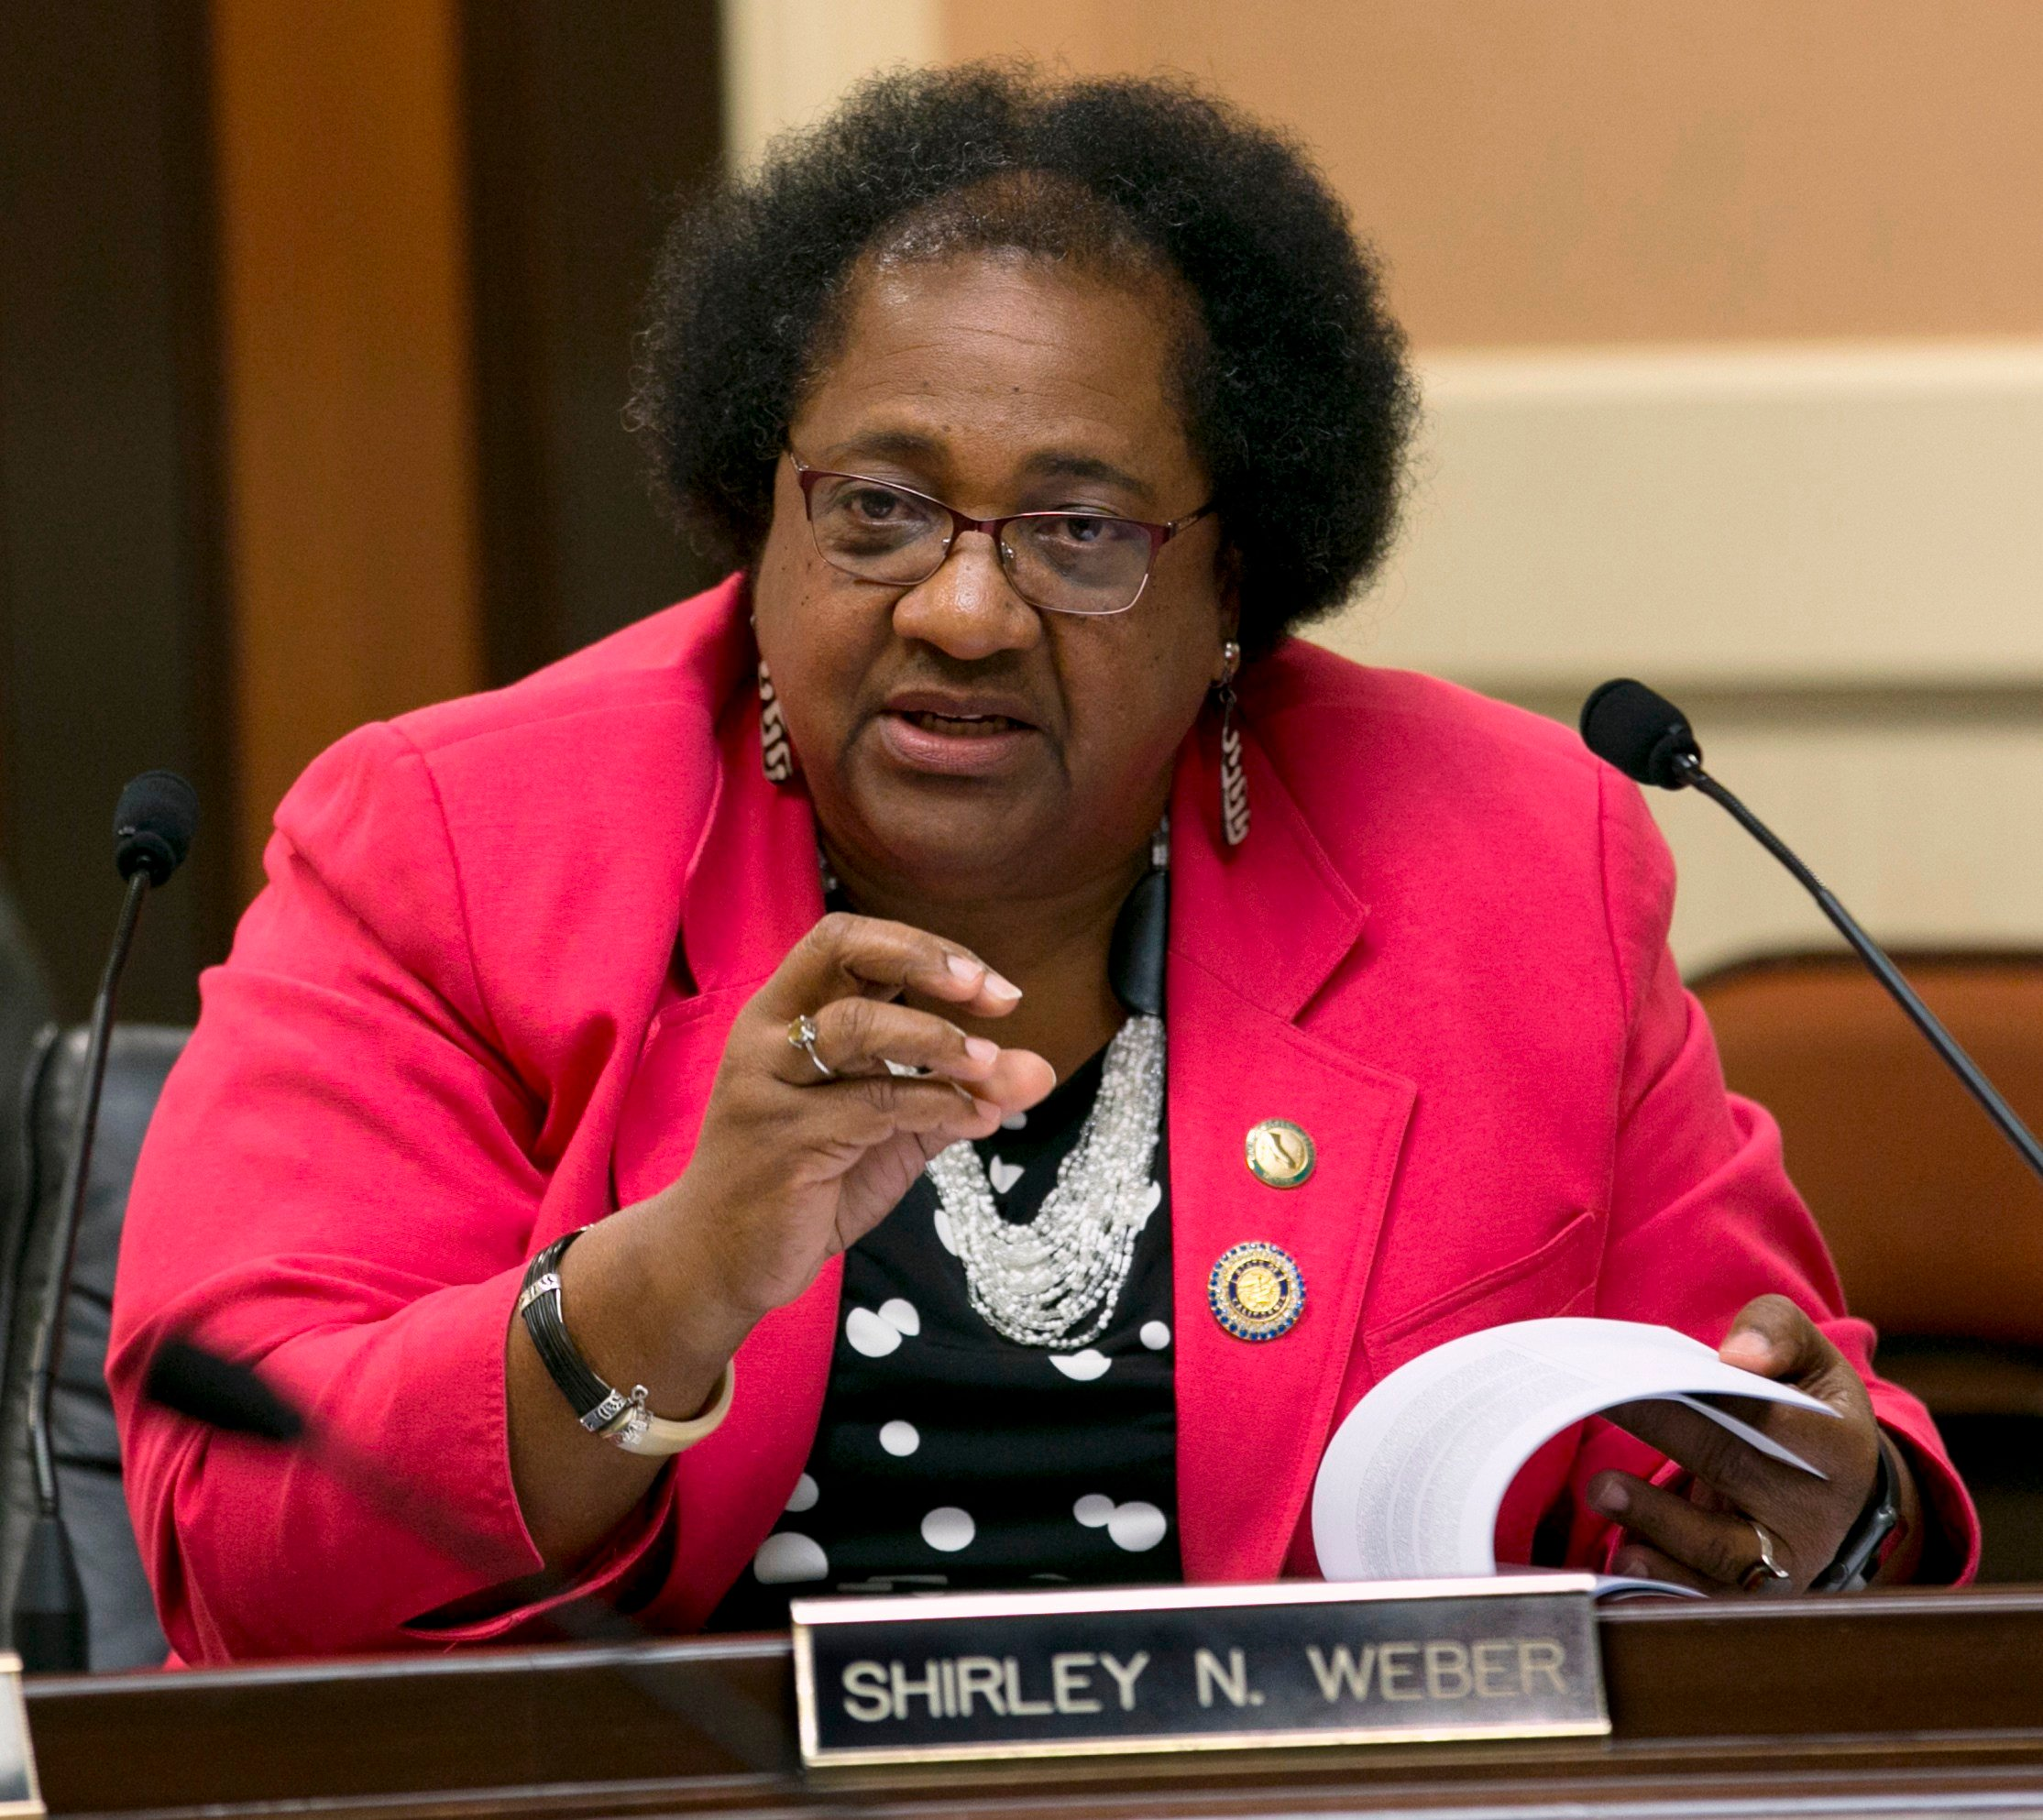 FILE - Assemblywoman Shirley Weber, D-San Diego, questions representatives of the California State University system about a recent audit of spending on management staff, during a joint legislative hearing in Sacramento. (AP Photo/Rich Pedroncelli, File)